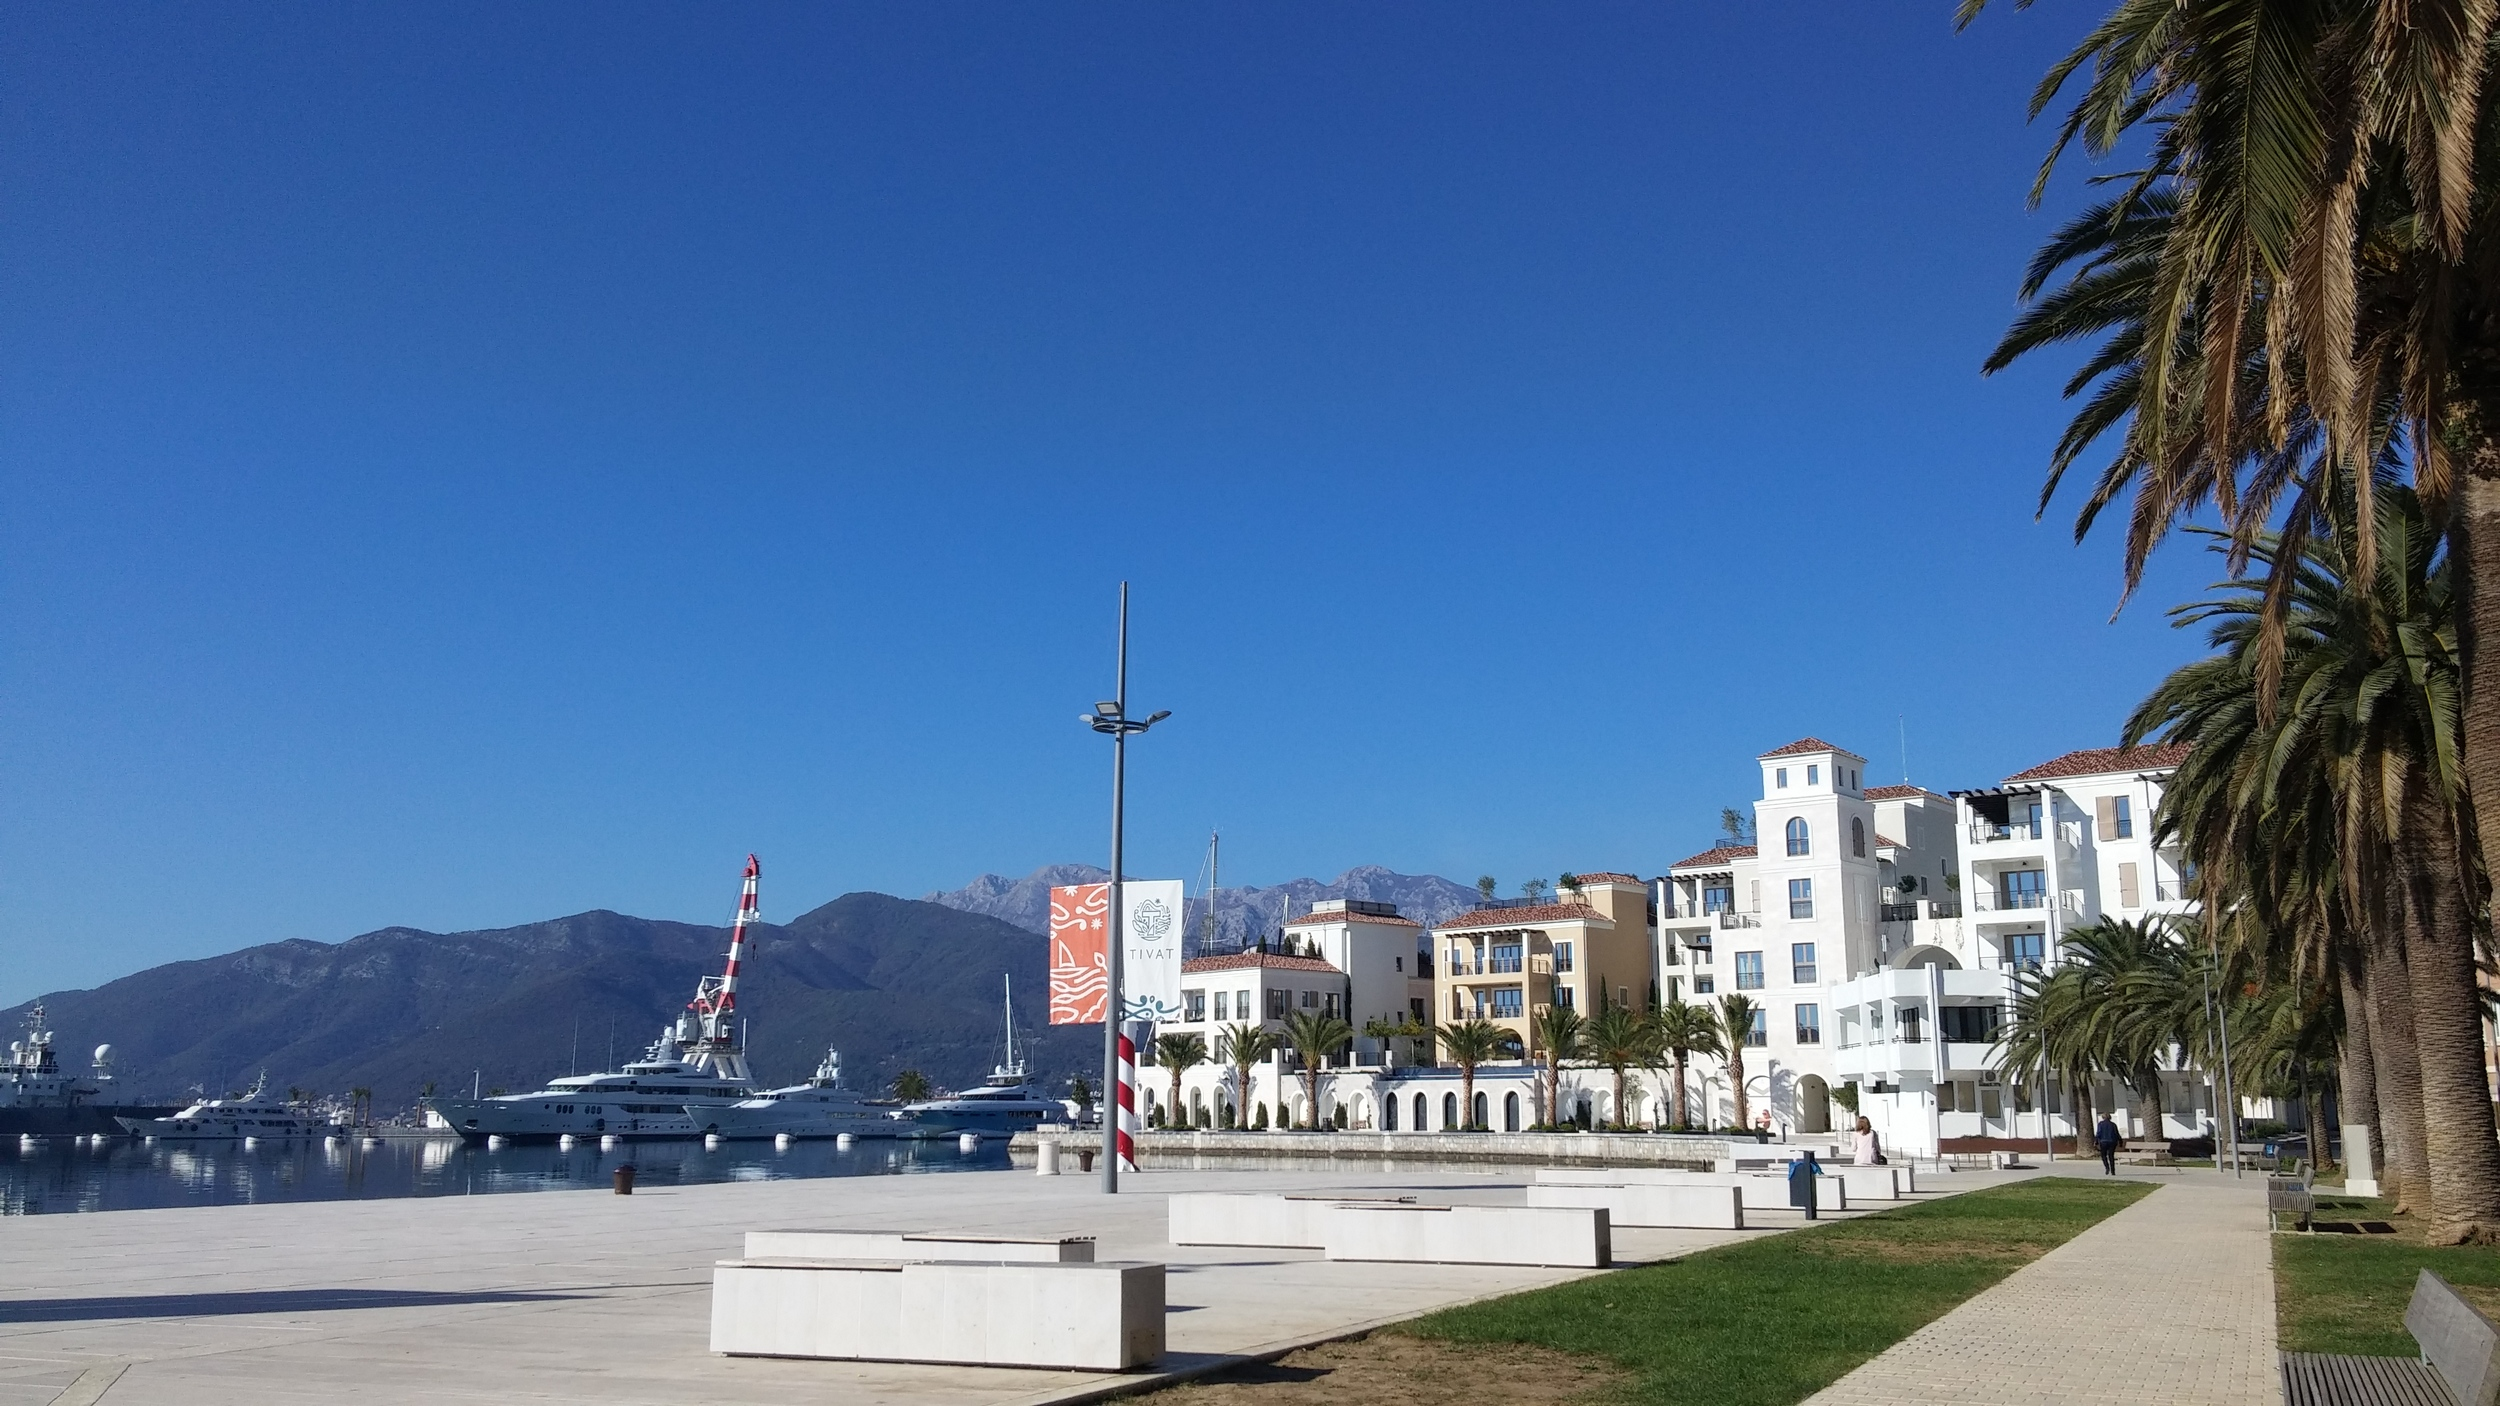 TIVAT , located in the central part of the Boka Kotorska Bay  Only a 15 minutes ride from Kotor, Tivat is a cosy and pleasant place to visit. In Tivat there is a lot of interesting attractions to see, such as Renaissance Summer House Buca in the center of the city, Flower Island, or Plavi Horizonti beach. Have a cup of Espresso on Šetalište Pine and watch multi-million dollar yachts anchored in Porto Montenegro, the biggest, luxurious marina in Montenegro. If you want to cool off, take a walk through City Park and read a good book surrounded by tall trees.